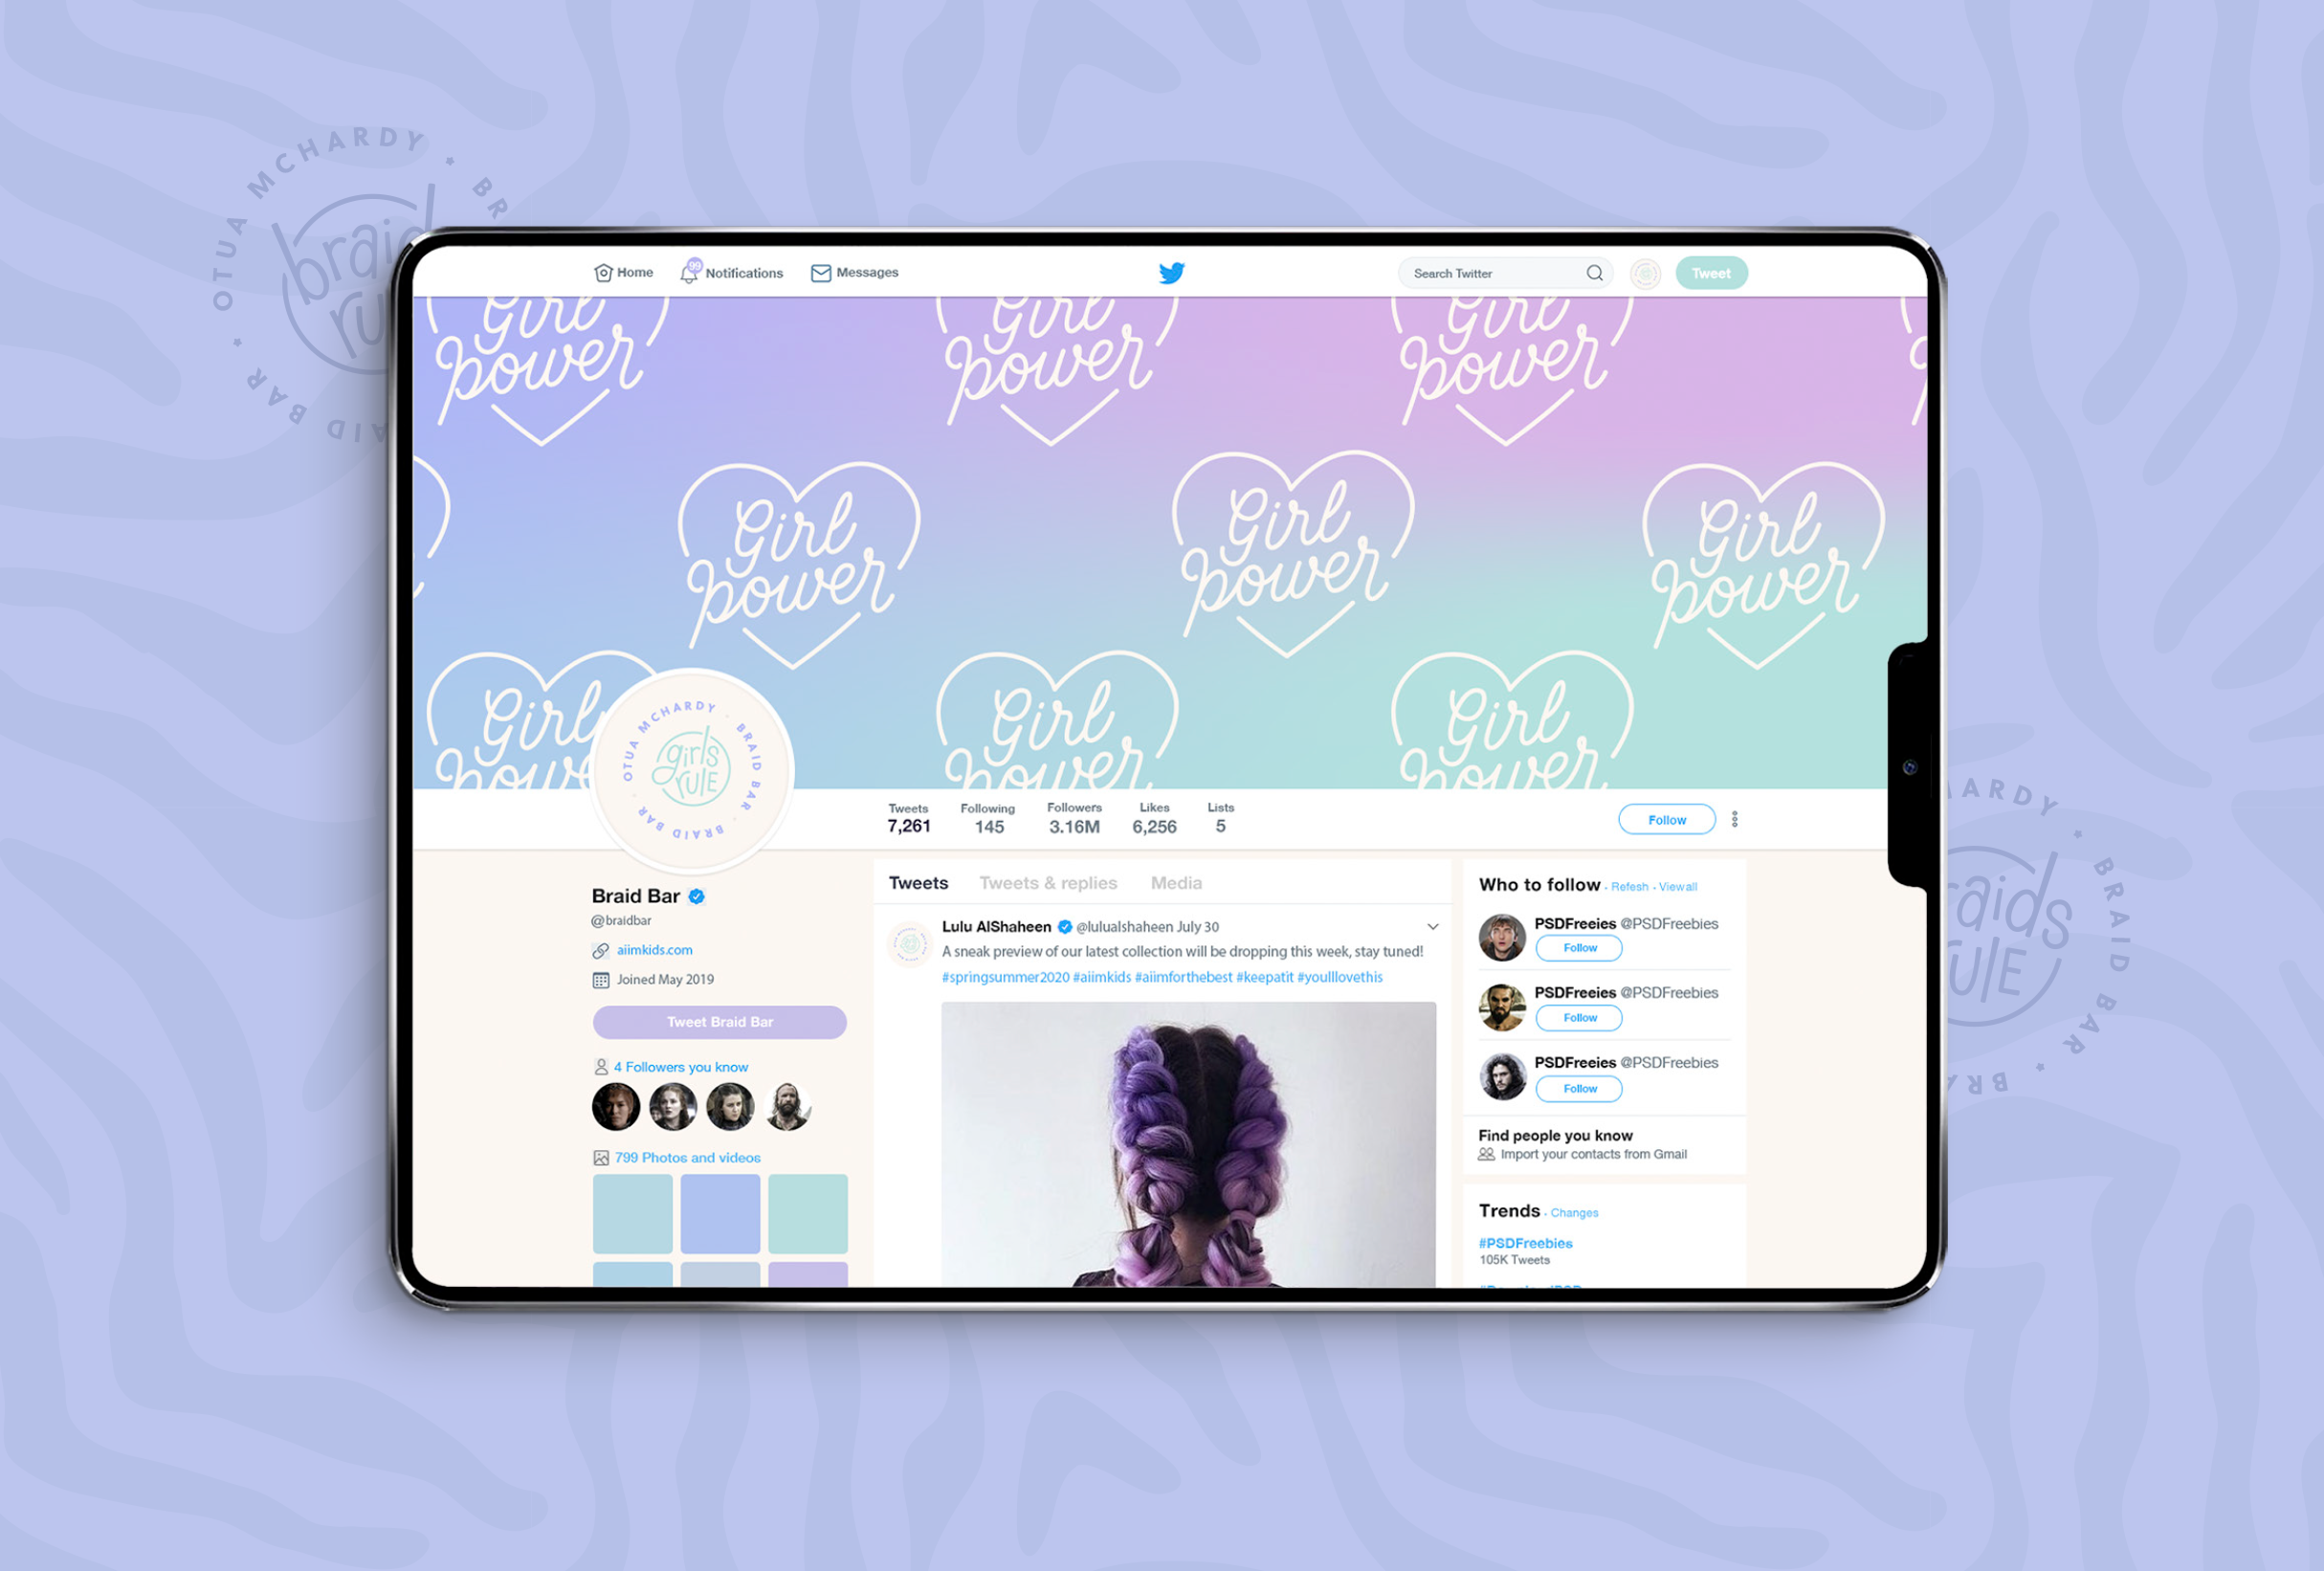 Twitter profile for Braid Bar, providing a premium experience and high-quality braiding services - designed by Wiltshire-based graphic designer, Kaye Huett